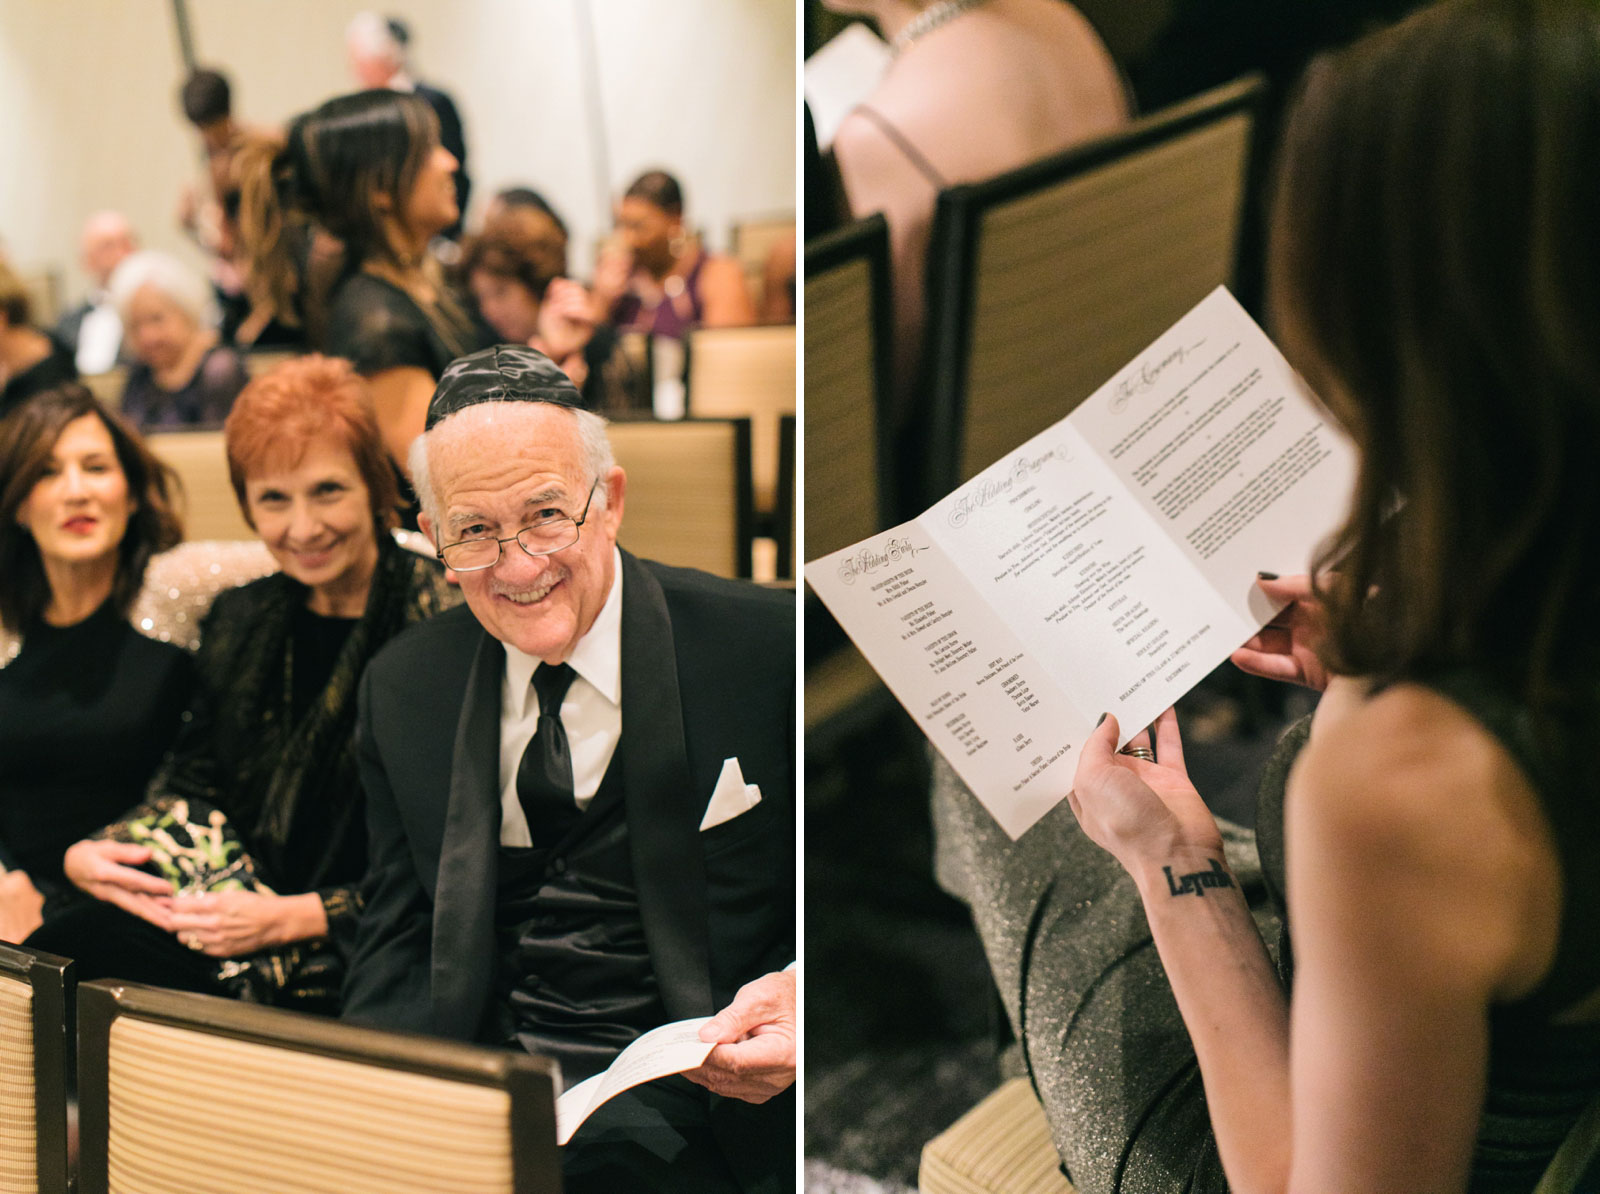 wedding guests read program for multicultural wedding ceremony and wait excitedly for ceremony